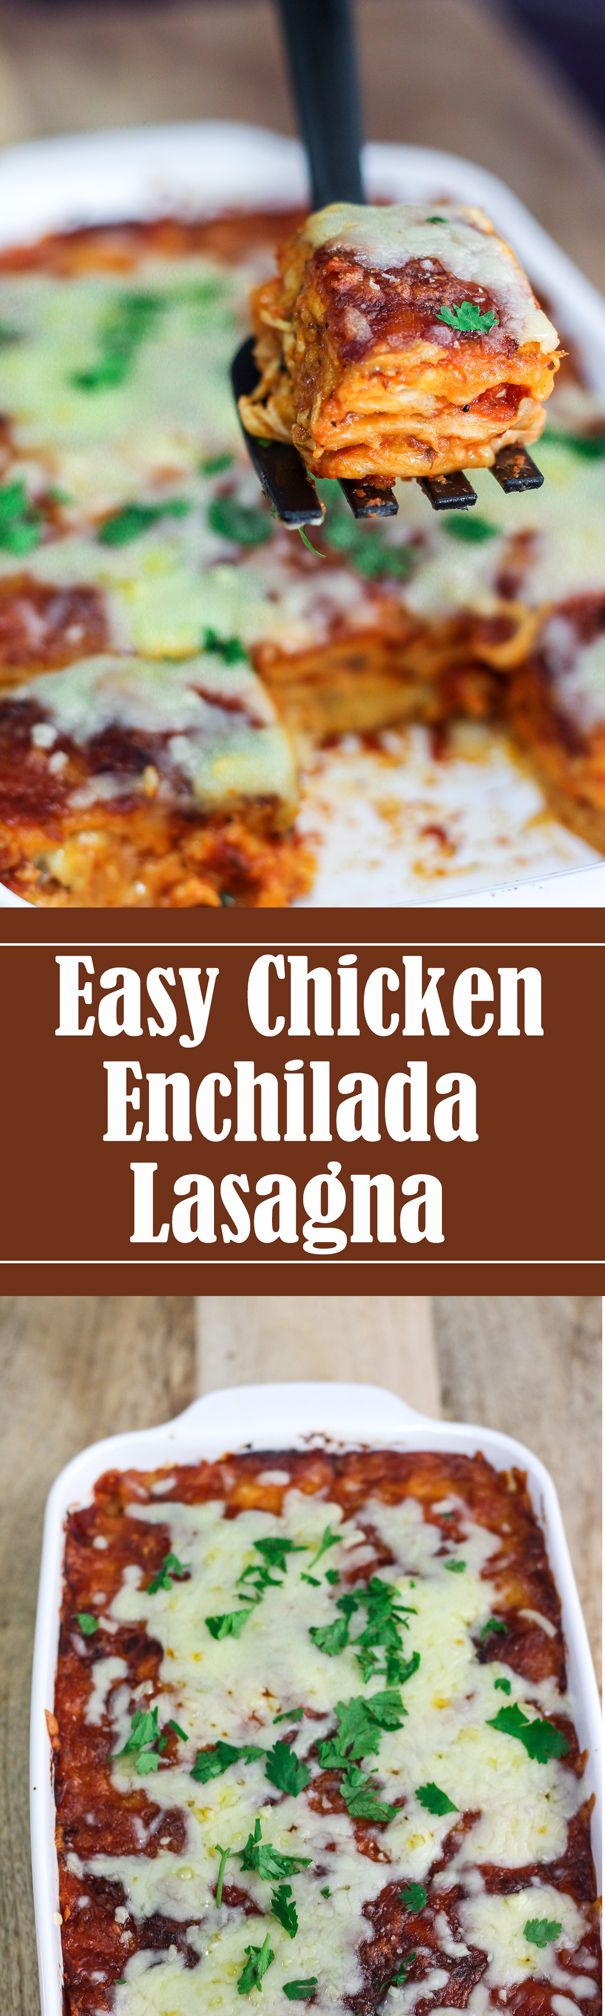 This Easy Chicken Enchilada Lasagna is a breeze to make. The unique thing about this dish is, this actually tastes just like a lasagna AND an enchilada too.